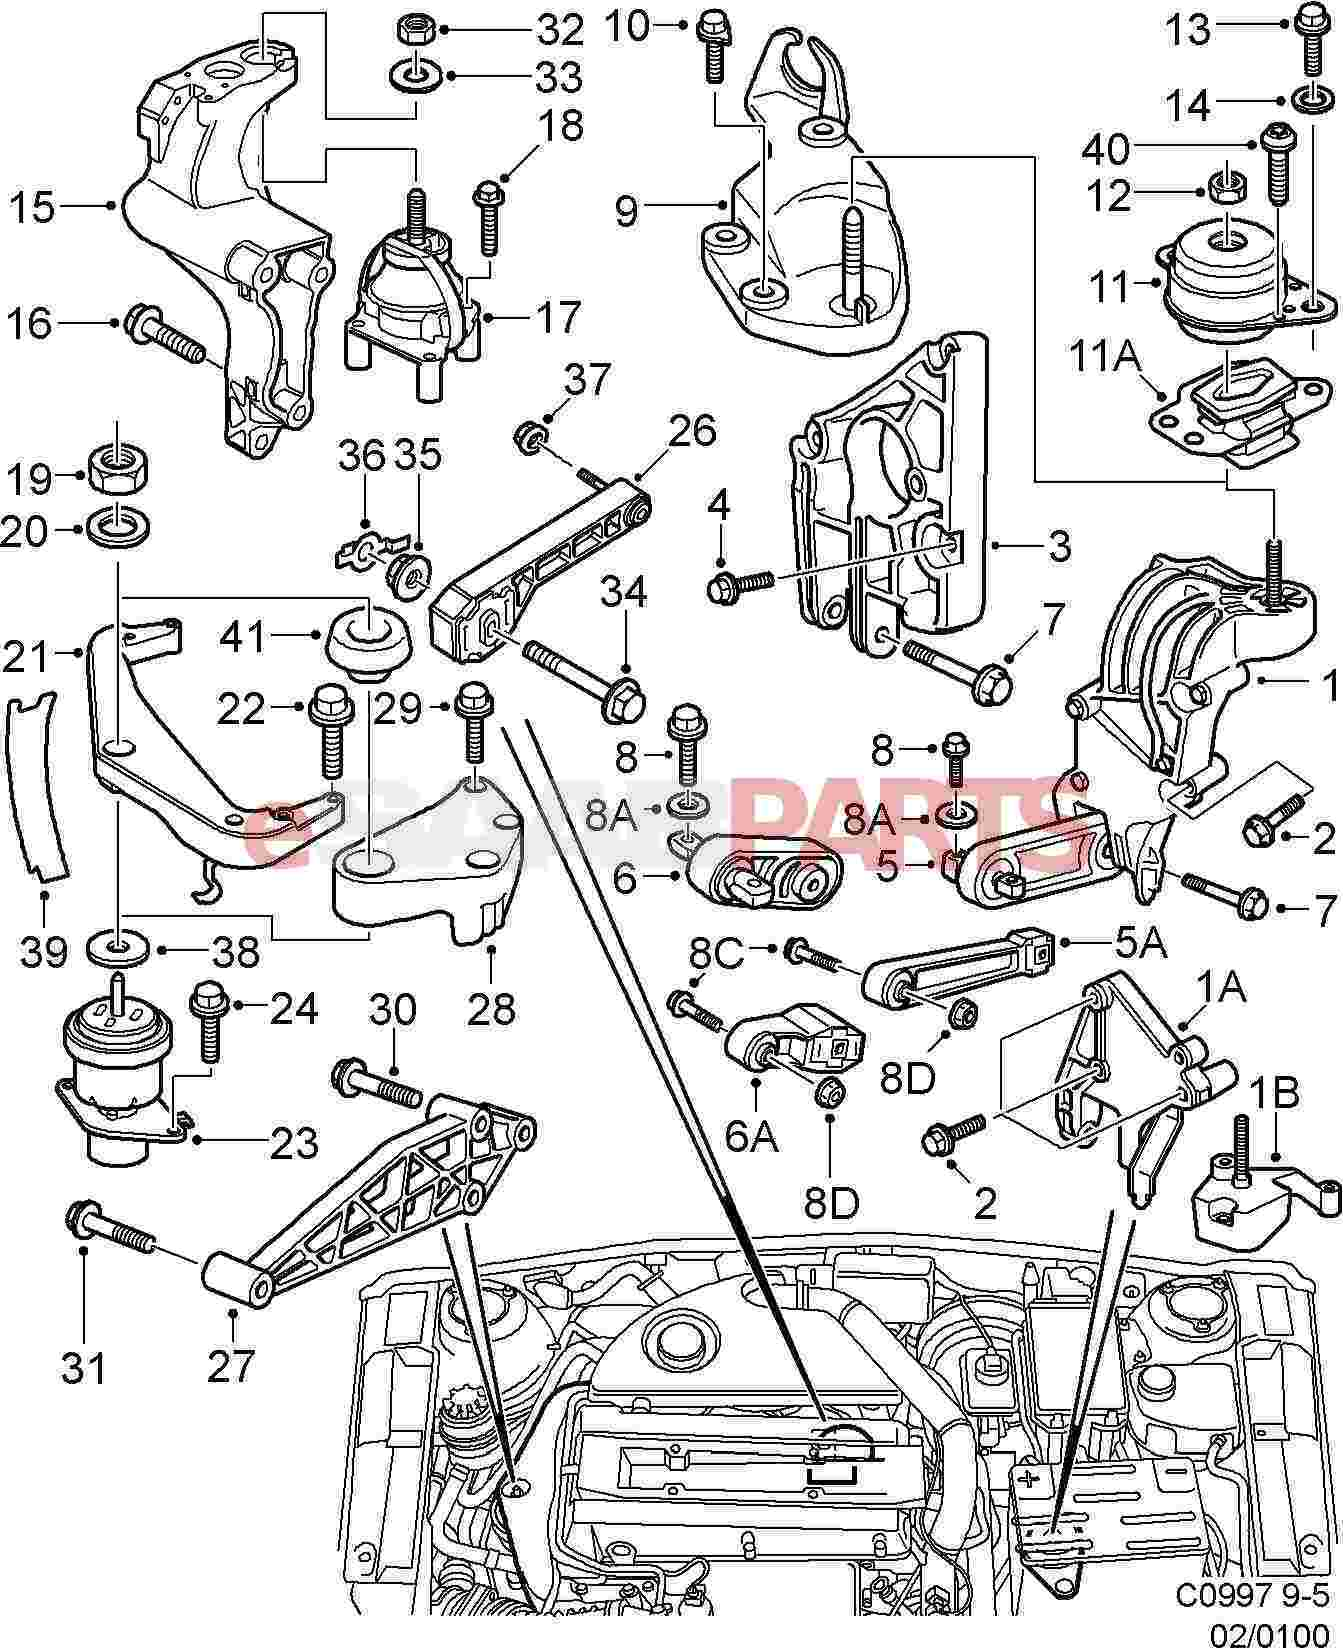 saab engine diagram group electrical schemes 2003 saab 9-3 turbo wiring diagram 1989 saab 900 wiring